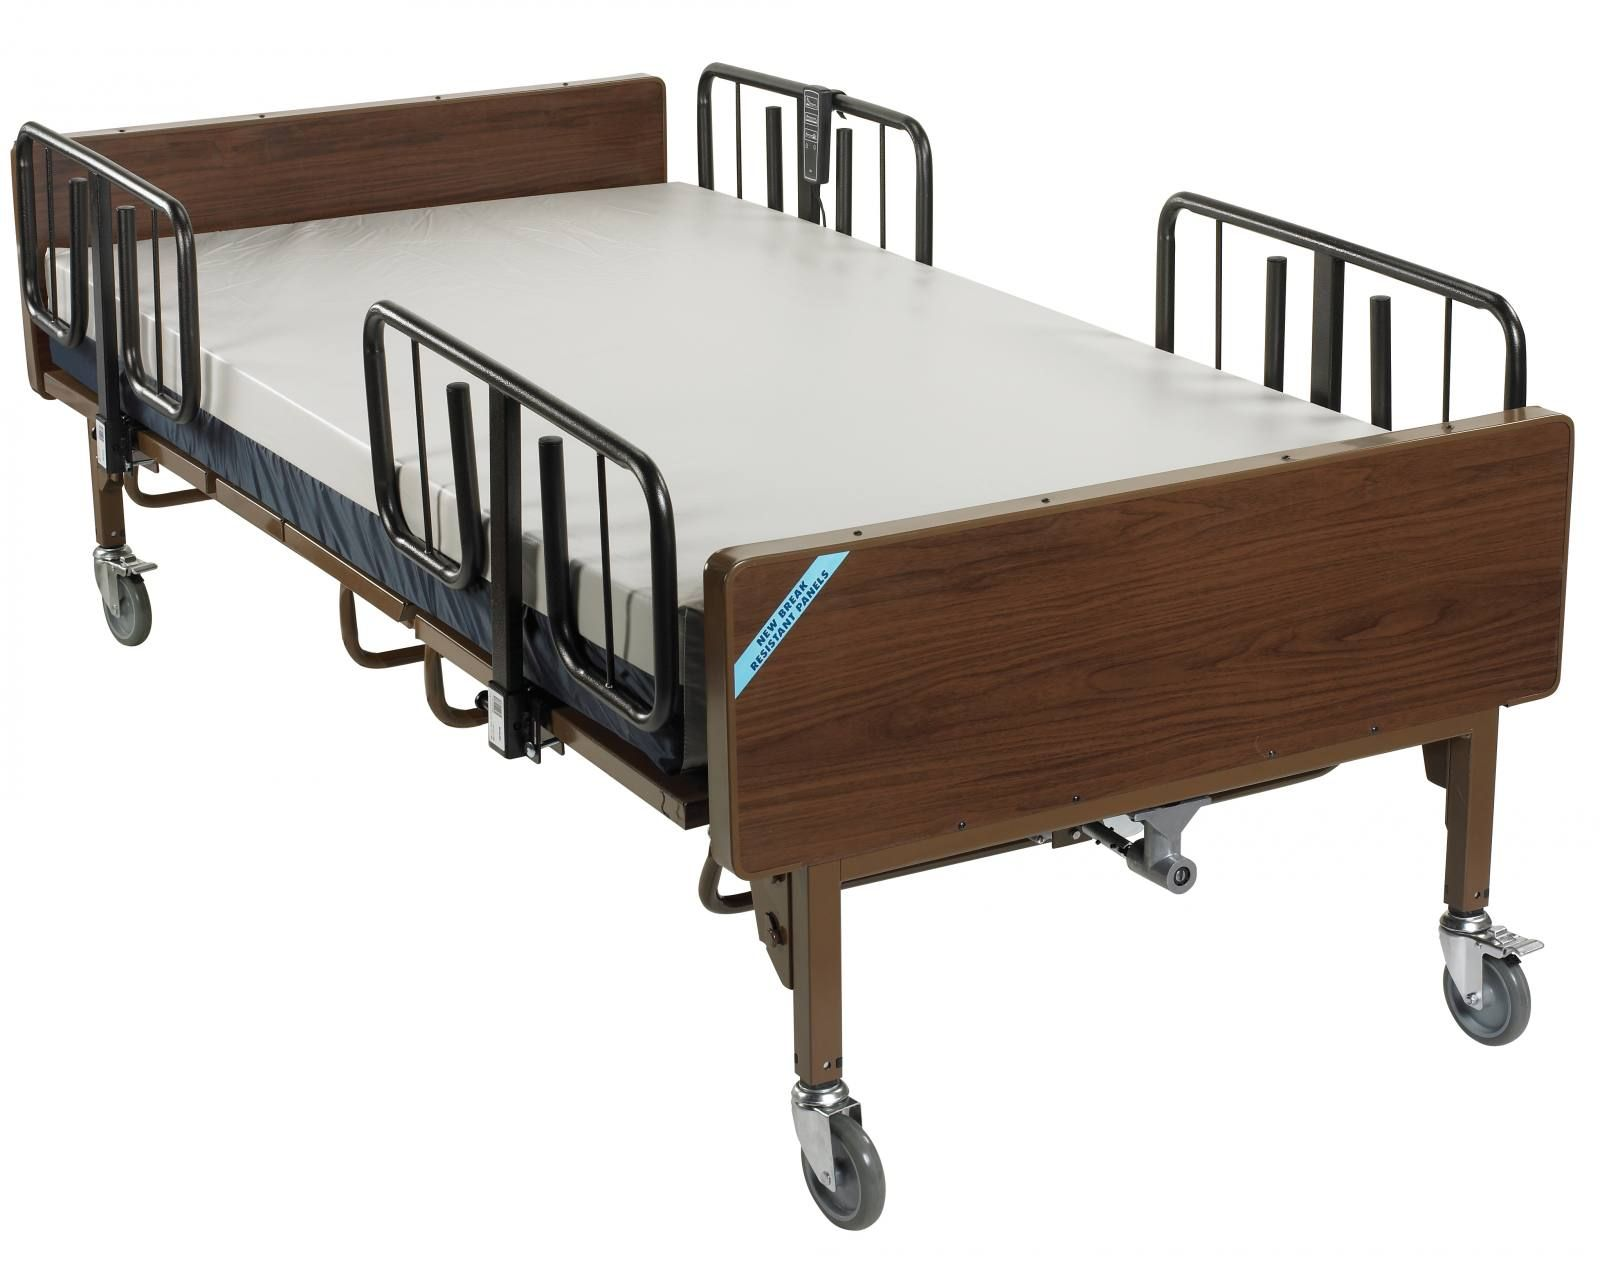 Full Electric Bariatric Hospital Bed Hospital bed, Bed